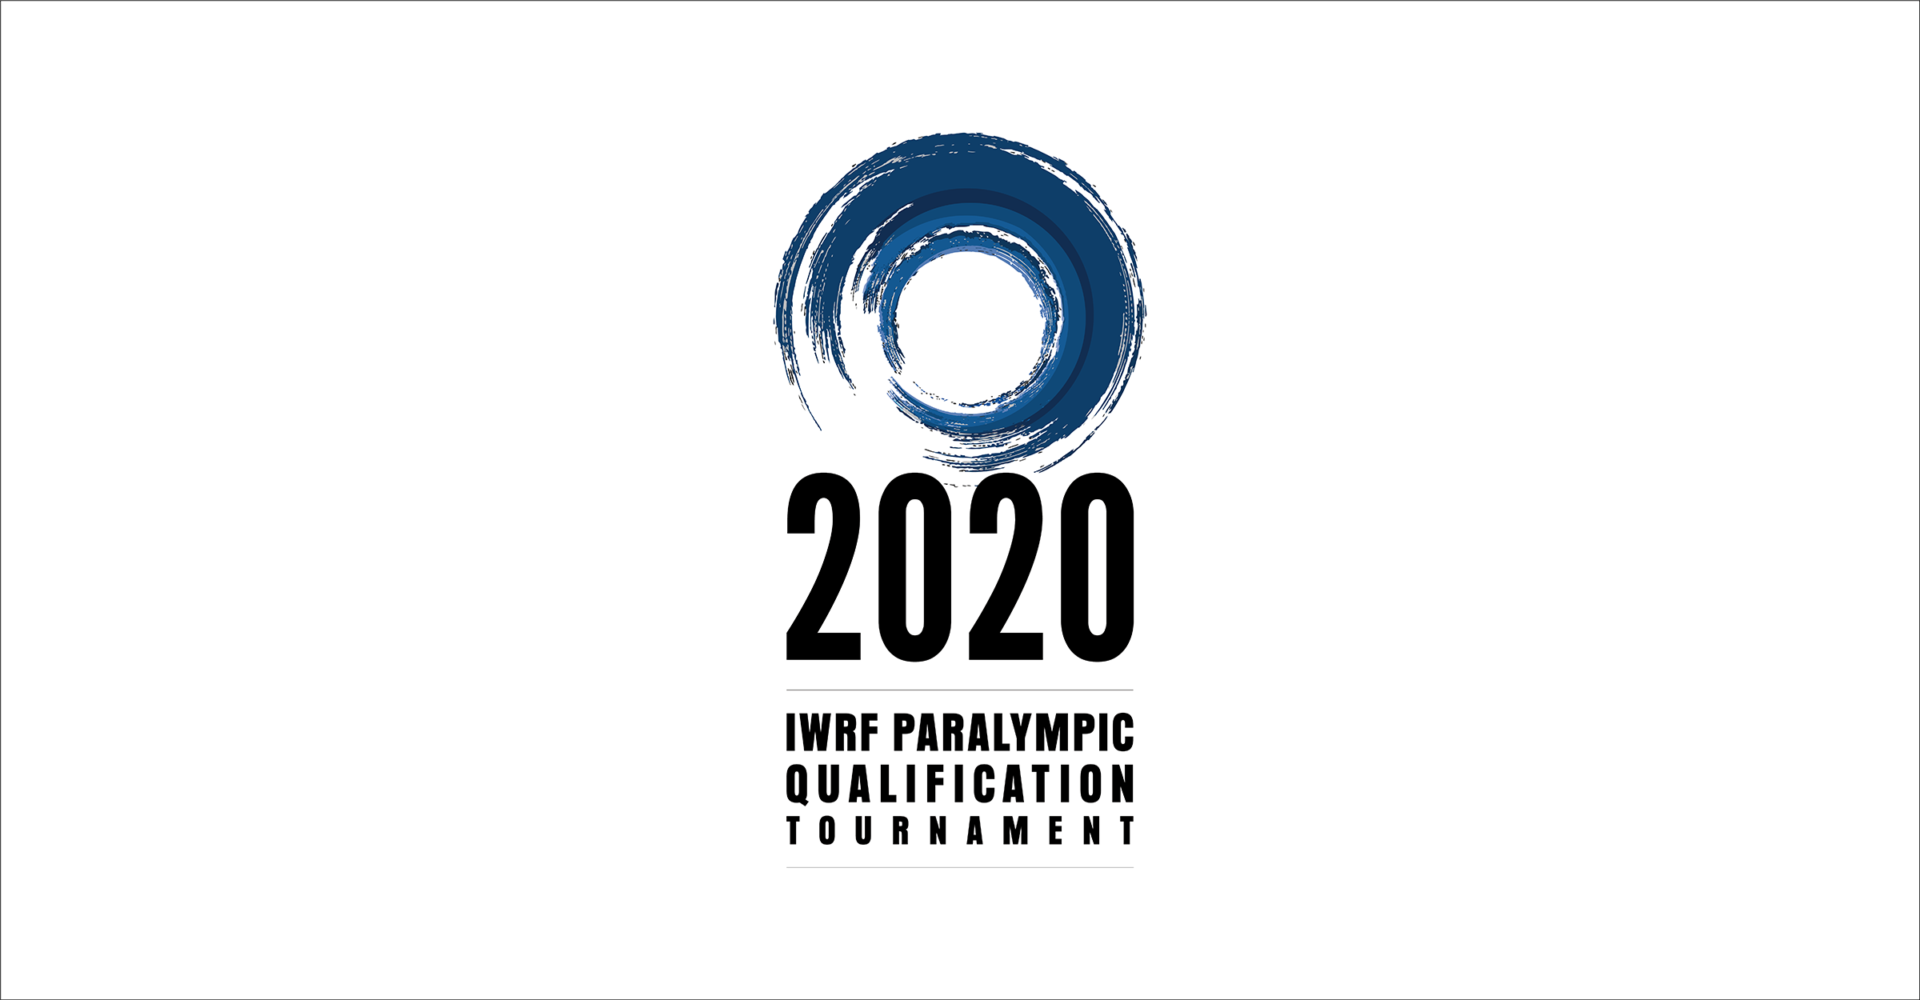 FORMAT CHANGED FOR THE 2020 IWRF PARALYMPIC QUALIFICATION TOURNAMENT